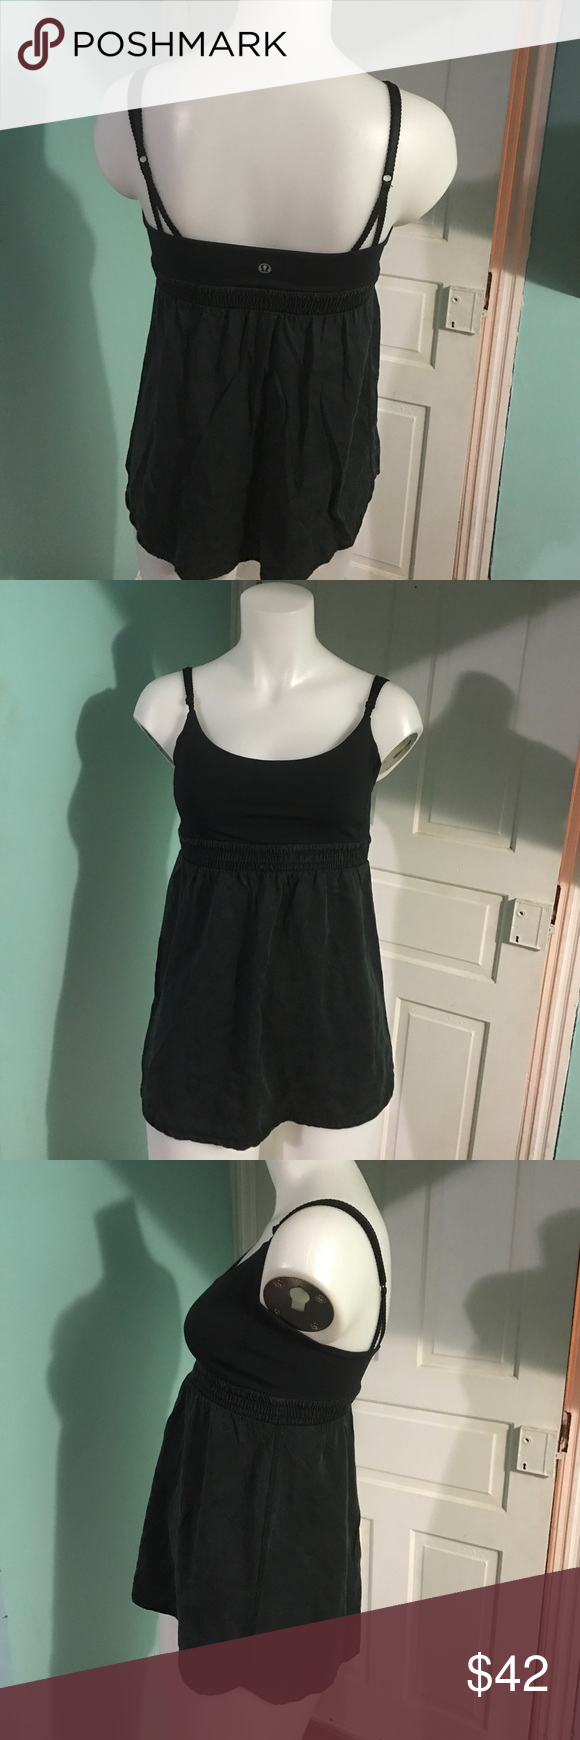 Lululemon Bliss Tank sz8 Lululemon Bliss Tank sz8. Great condition. Bottom half feels so soft like silk/suede. Baby doll style. Tops